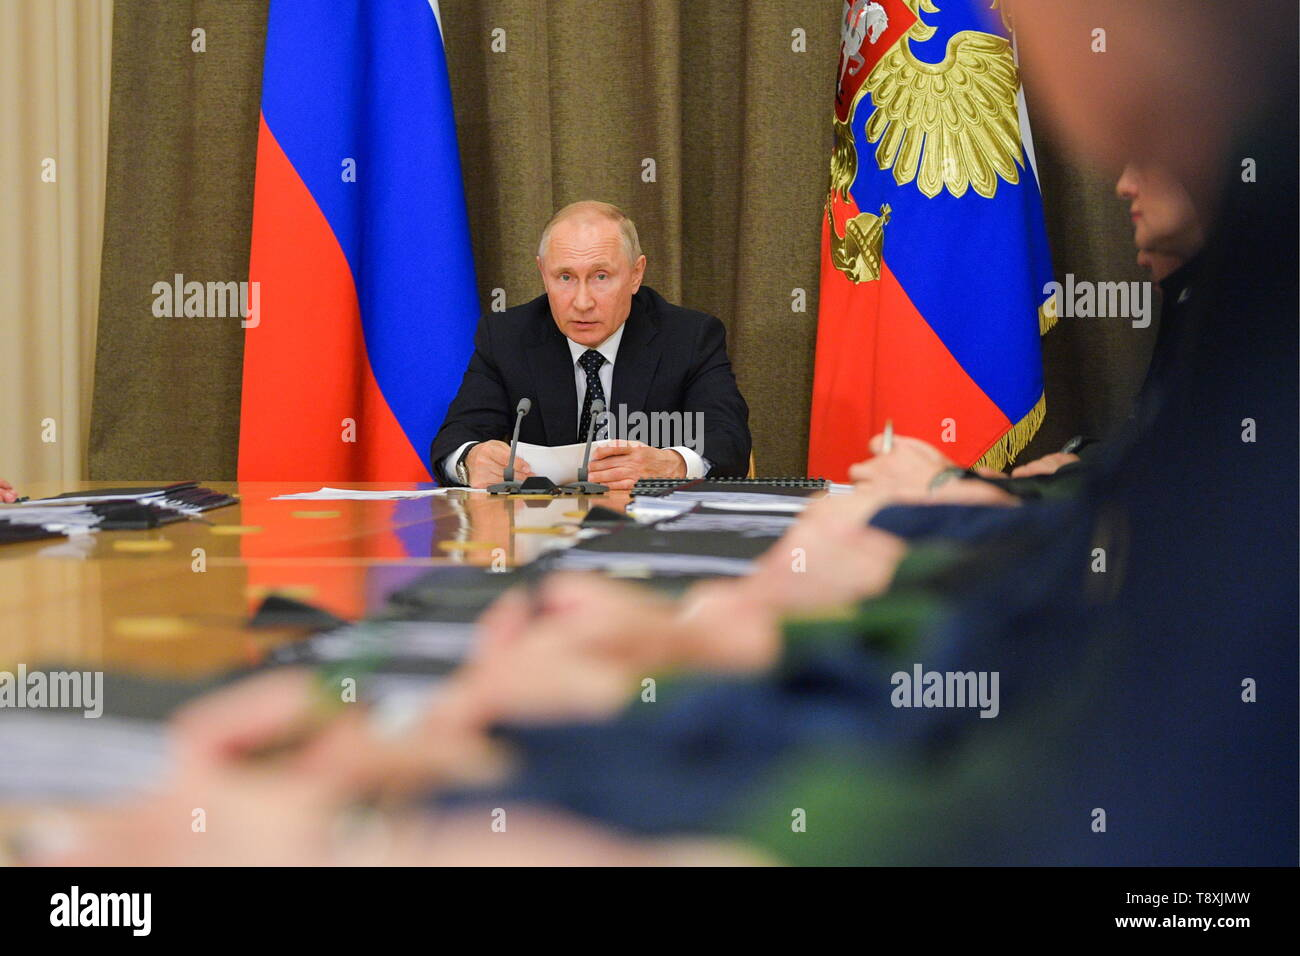 Sochi, Russia. 15th May, 2019. SOCHI, RUSSIA - MAY 15, 2019: Russia's President Vladimir Putin holds a meeting at Bocharov Ruchei residence to discuss military aviation issues. Alexei Druzhinin/Russian Presidential Press and Information Office/TASS Credit: ITAR-TASS News Agency/Alamy Live News Stock Photo